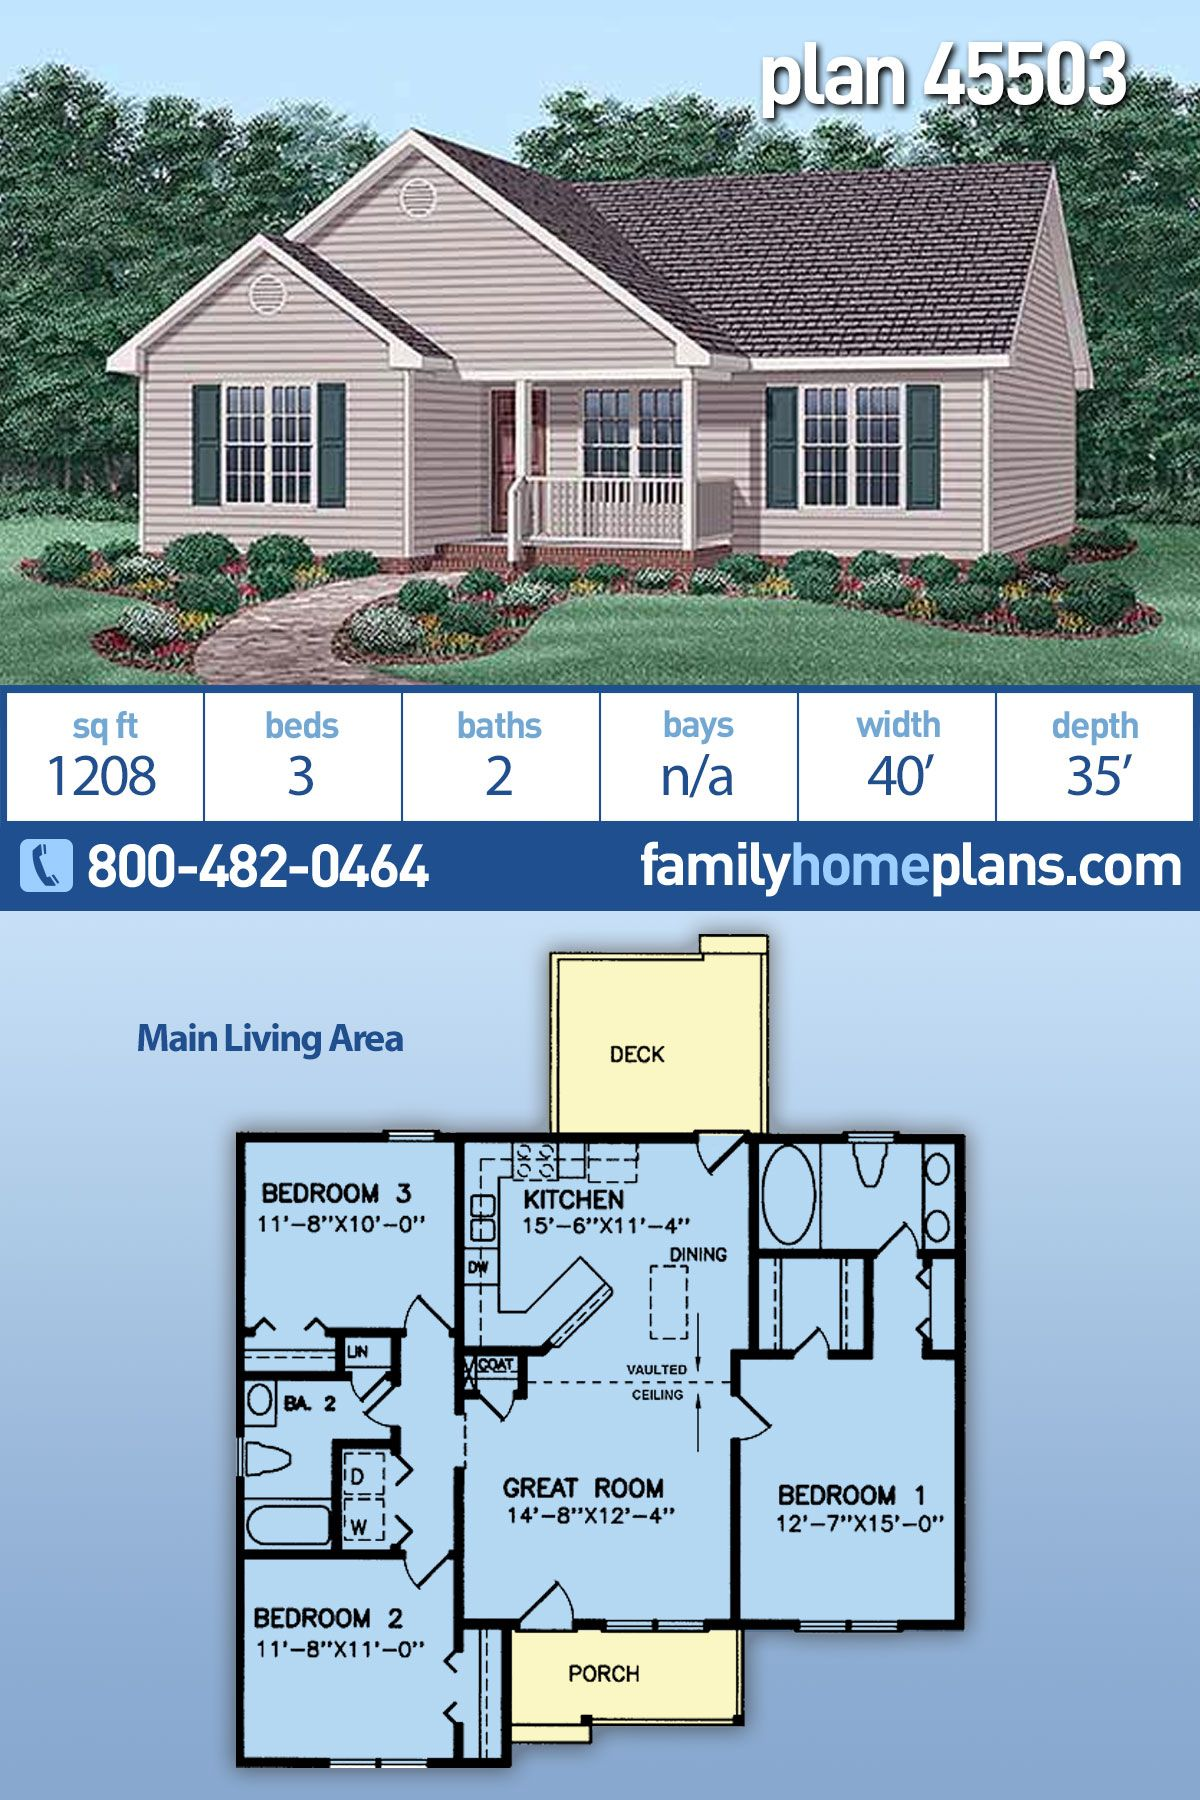 """A popular small house plan with three bedrooms and just over 1200 sq ft. A transitional """"split bedroom"""" design, this plan offers economy of construction along with timeless grace. Just inside the welcoming front porch lies the spacious Great Room and Kitchen/Dining areas with a dramatic vaulted ceiling. Other notable features of this plan: Rear grilling deck, economic design for affordable home construction, great use of space. Small floor plan, cost effective home. #smallhouseplans #smallhome"""